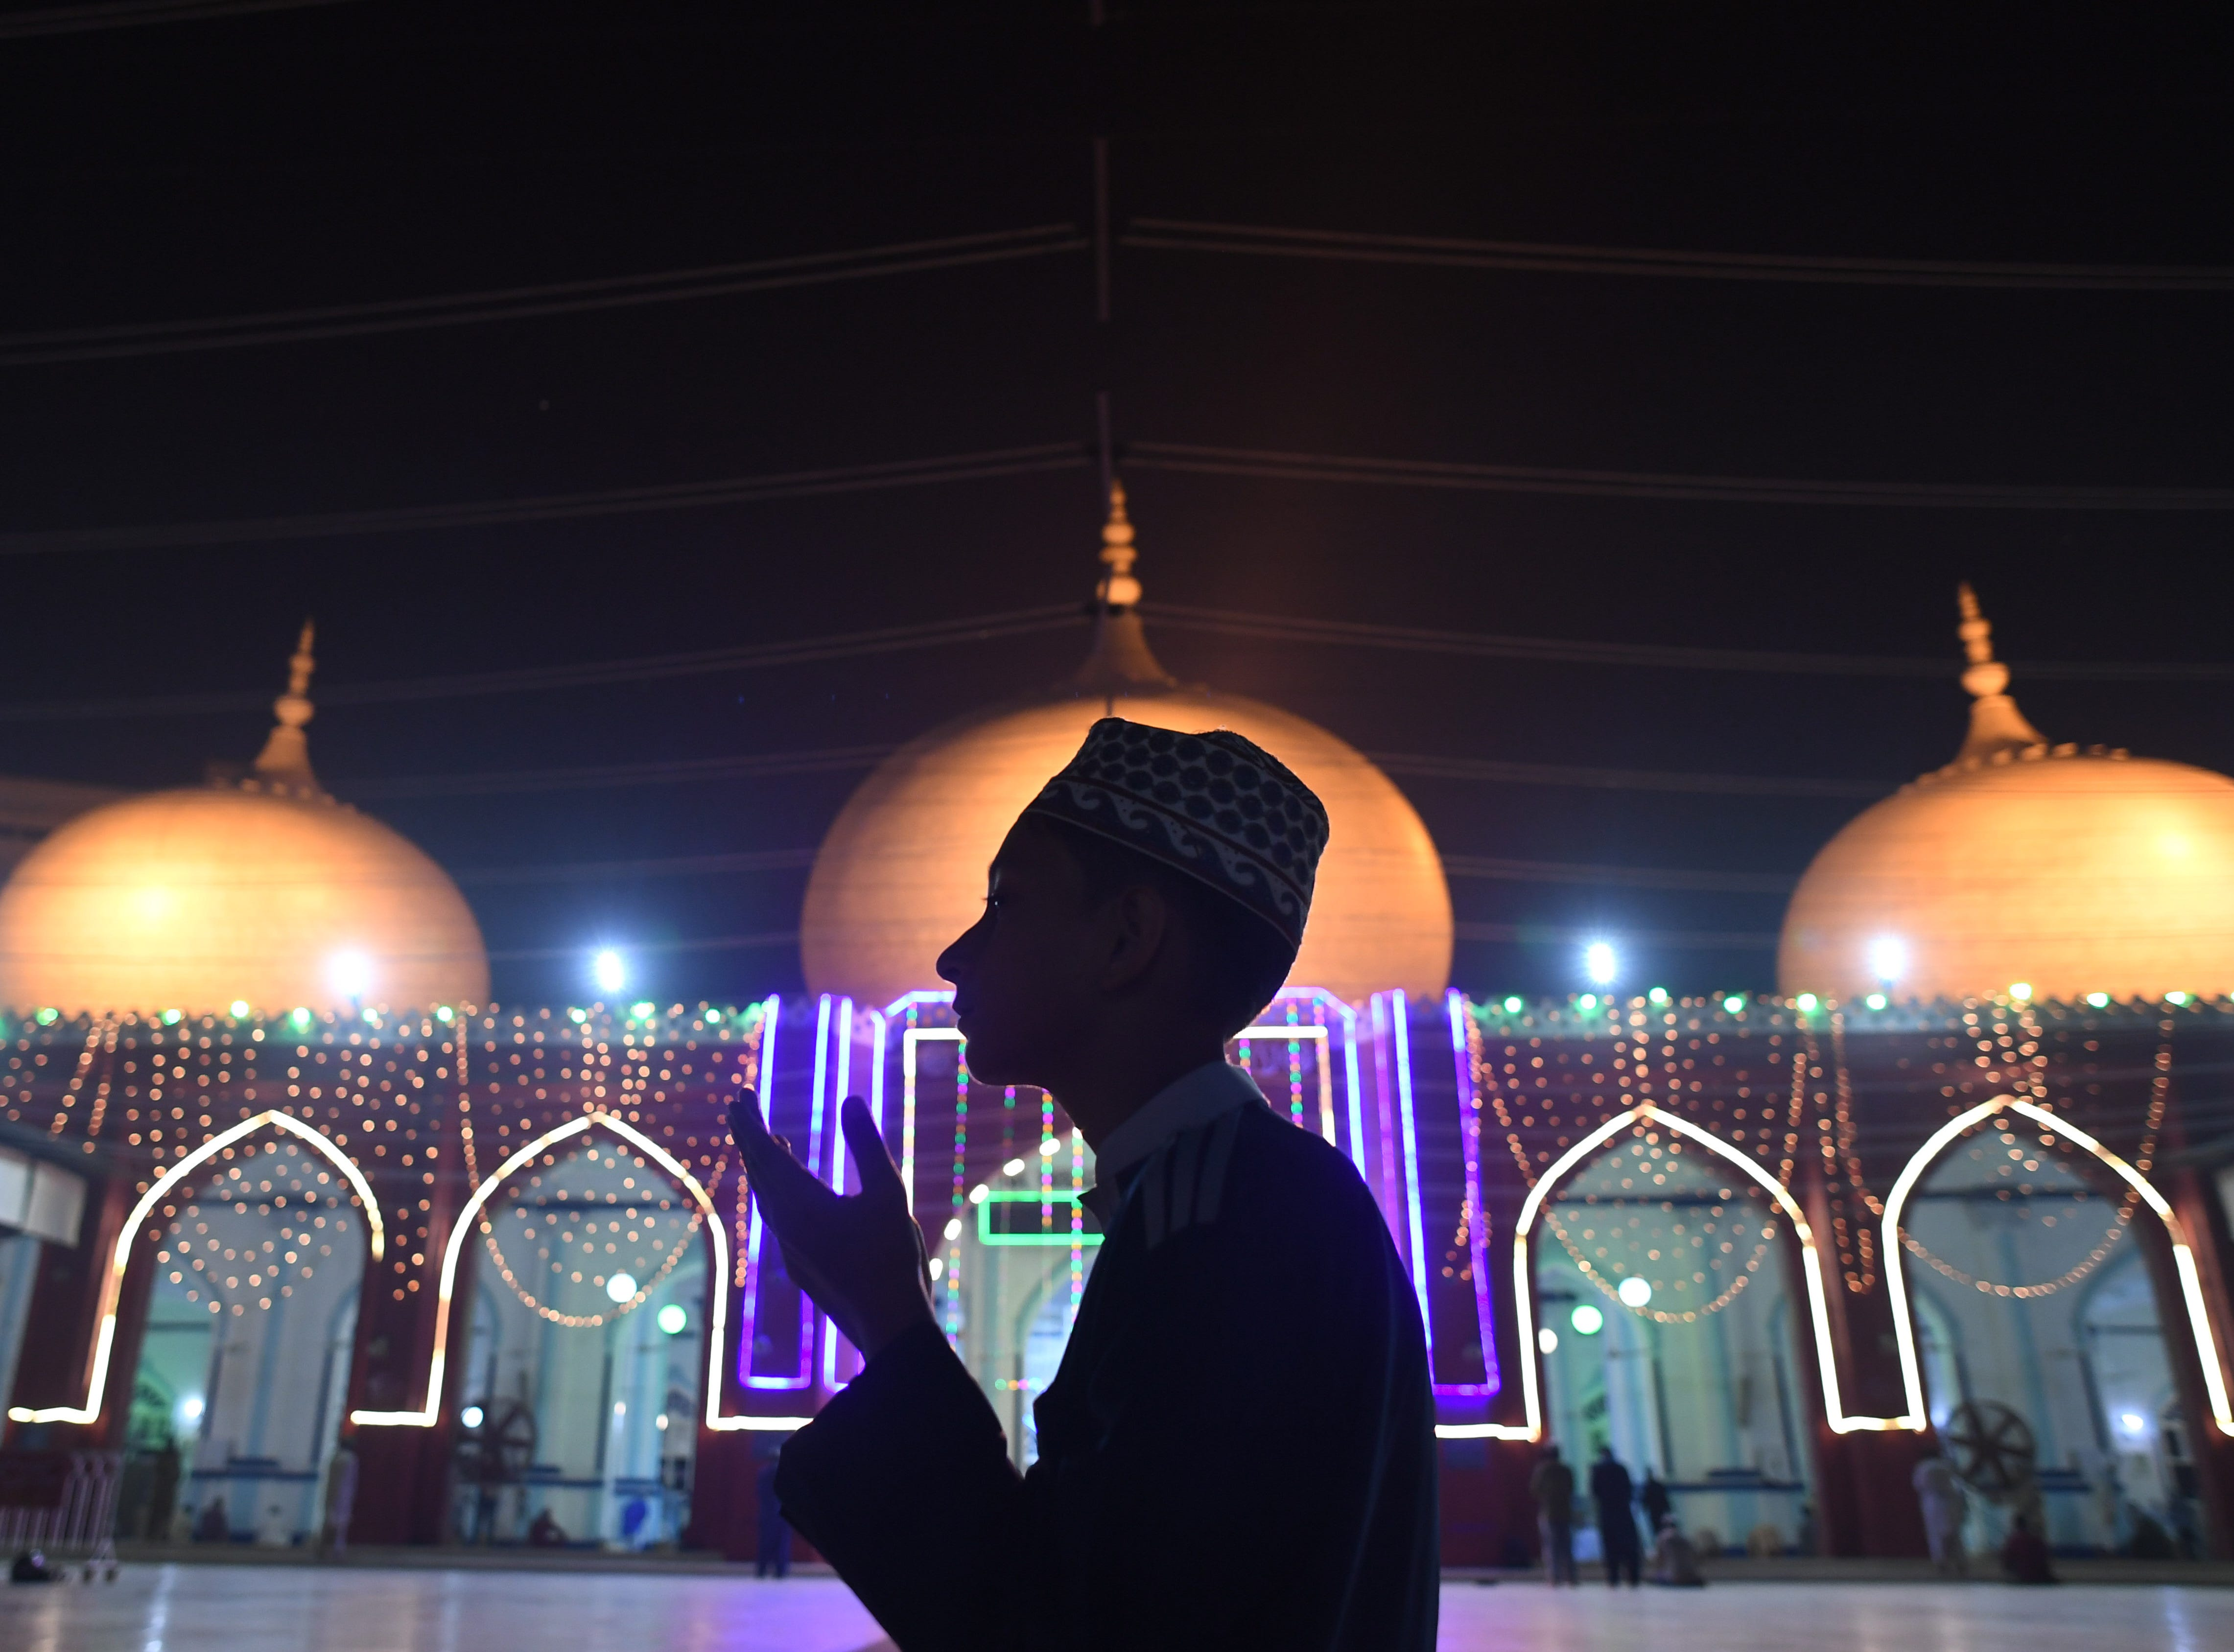 A Pakistani Muslim prays at an illuminated mosque in connection with Eid-e-Milad-un-Nabi, the birthday of Prophet Mohammad, in Karachi on November 20, 2018. - From sufis in Iraqi Kurdistan shaking their hair to rhythmic drumbeats, to Libyan children receiving toys and Egyptians swapping sweets -- Muslims across the world celebrated Prophet Mohammed's birthday on November 20. Several thousand kilometres (miles) away in Pakistan, mosques are elaborately illuminated with strings of light to celebrate, while in Morocco, the day typically sees the king grant widespread amnesties.